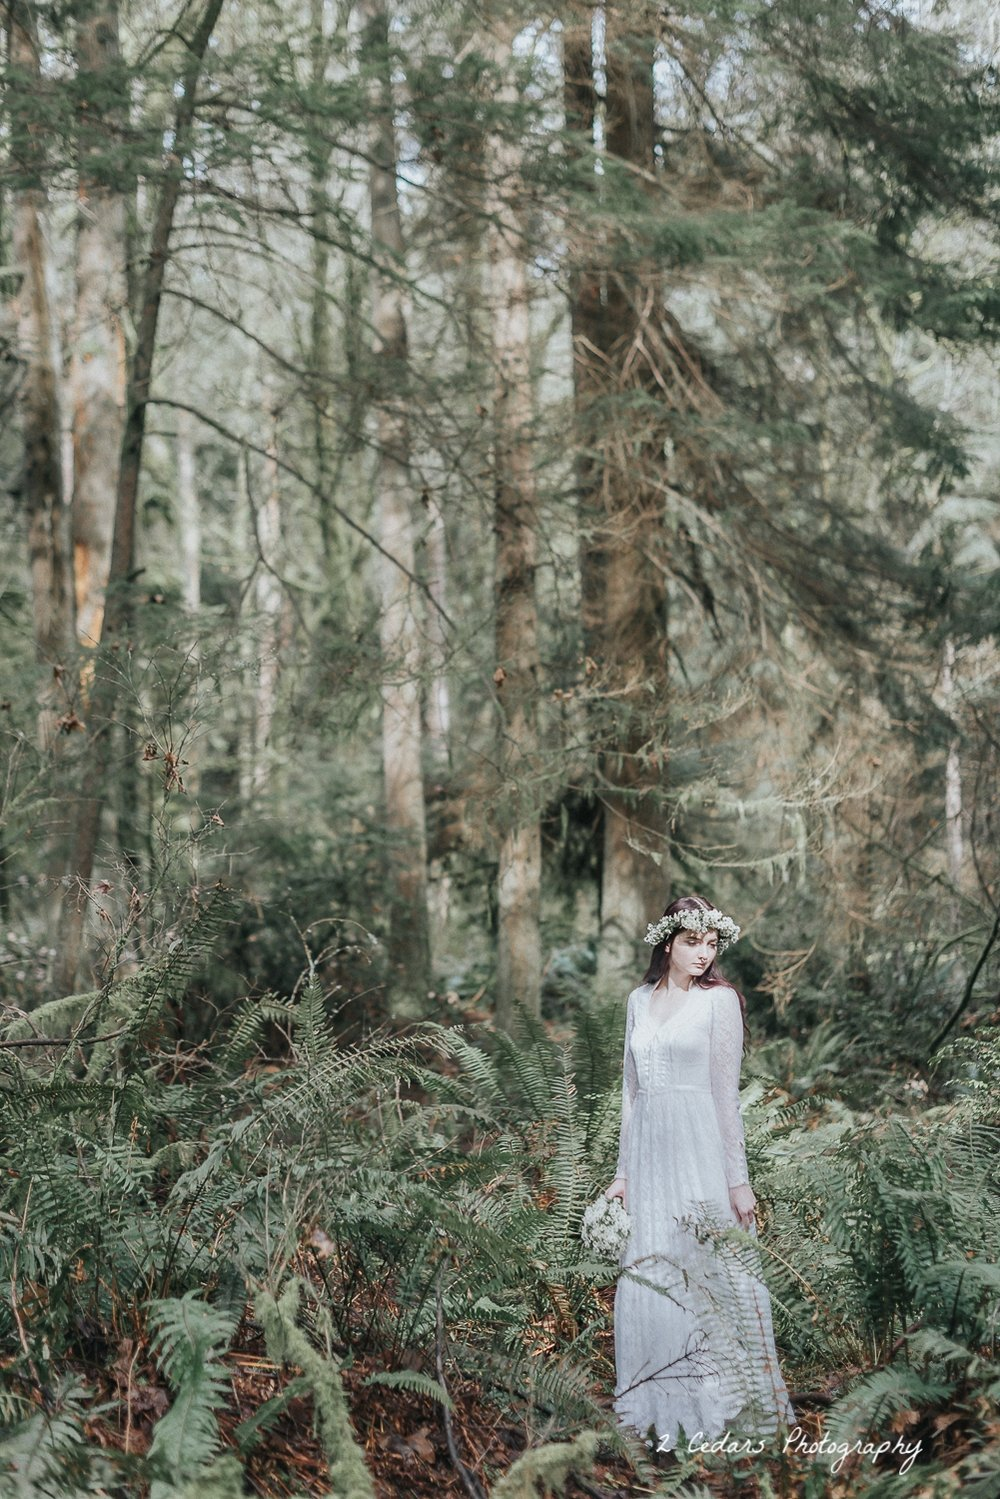 2 Cedars Photography - Seattle/Tacoma Photographers  Pacific Northwest forest bride in the sunlight